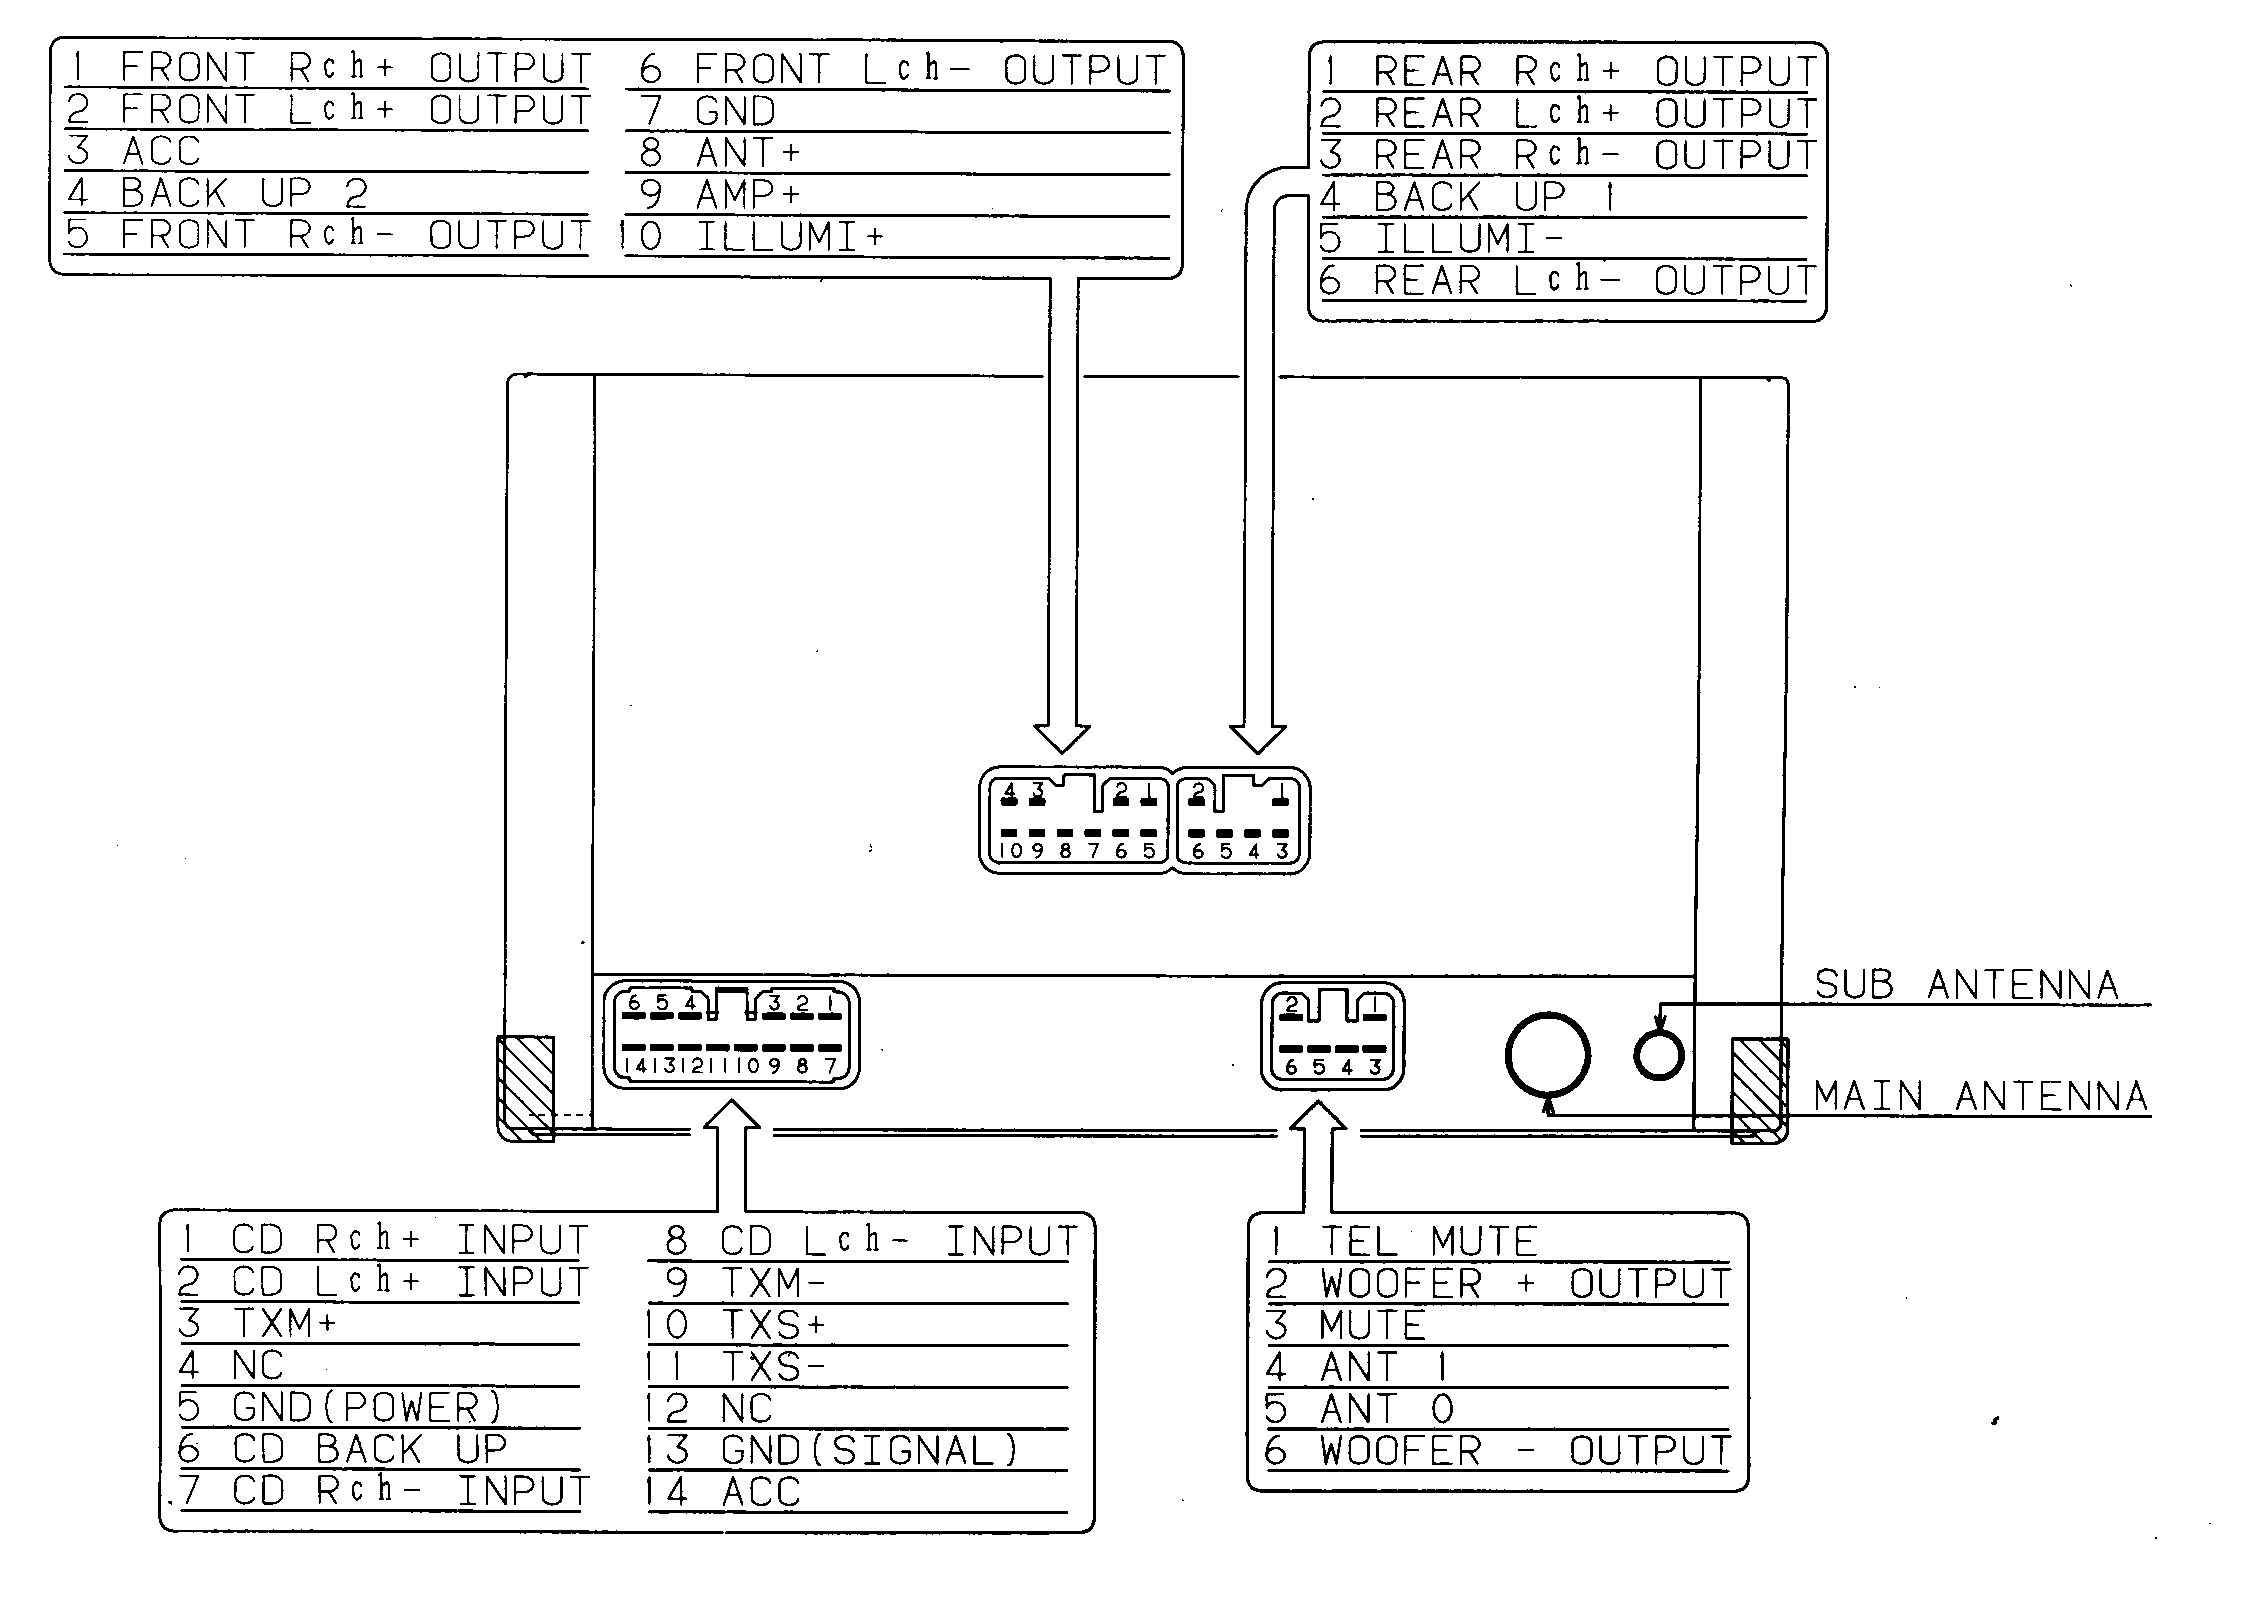 WireHarnessLexus121001 car audio wire diagram codes lexus factory car stereo repair 1995 lexus sc300 wiring diagrams at n-0.co